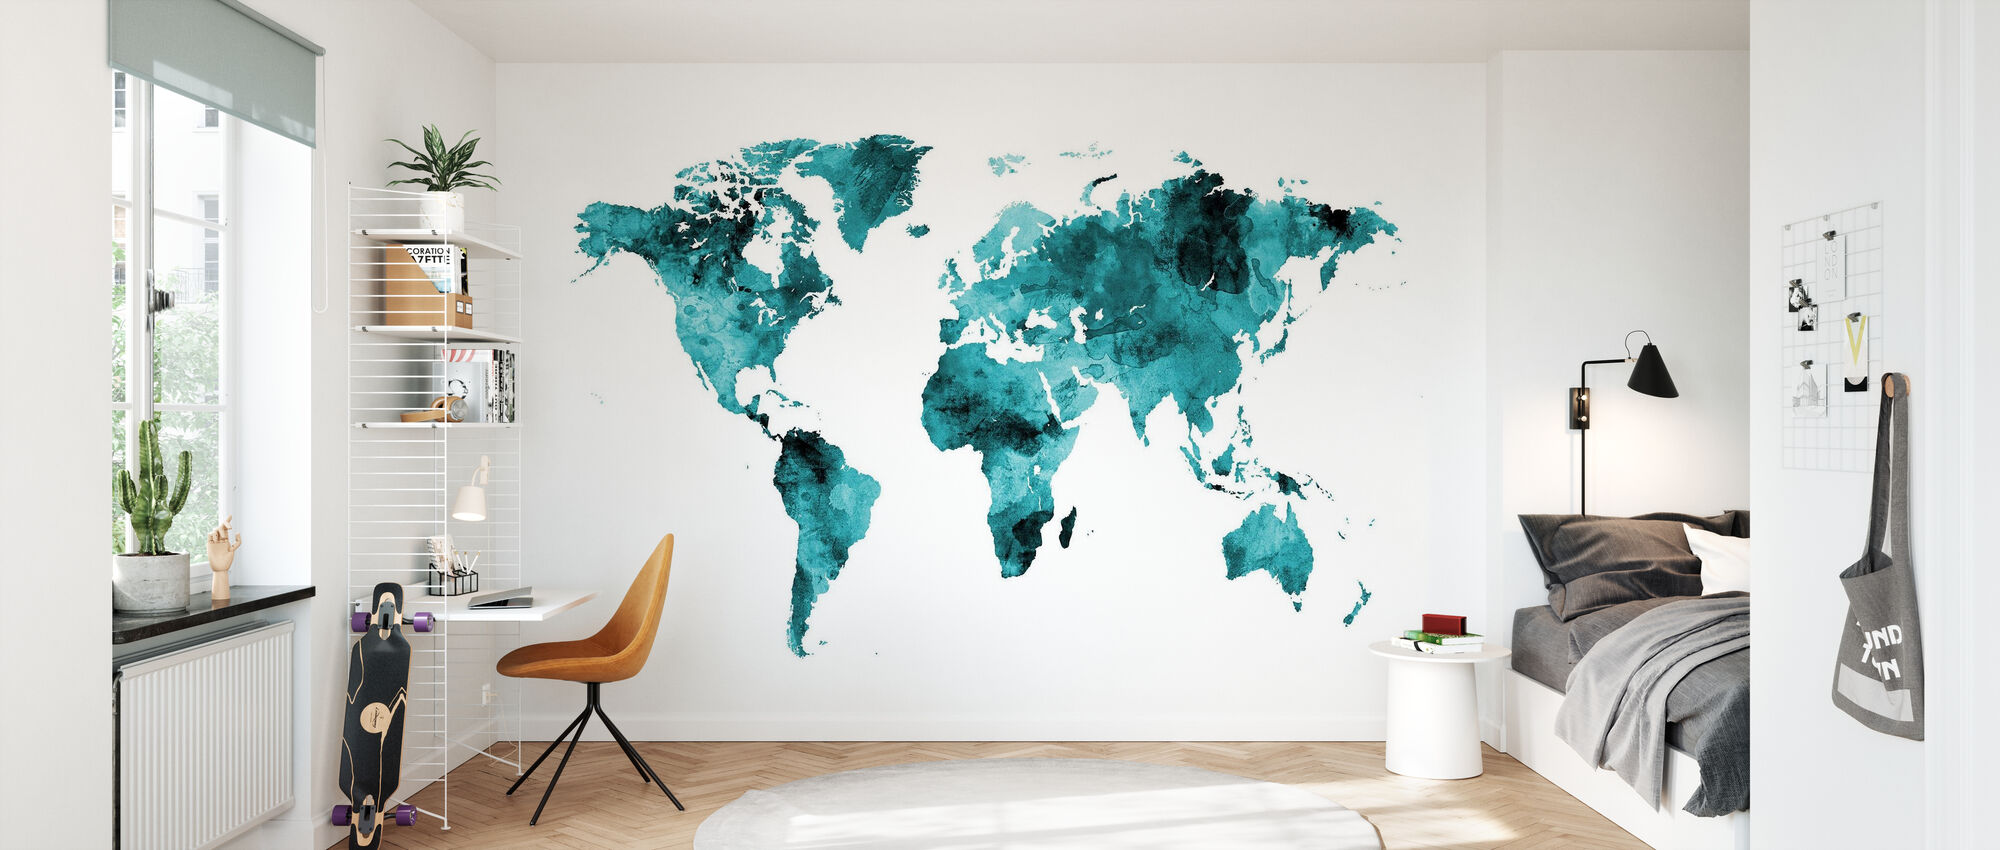 Watercolour World Map Turquoise - Wallpaper - Kids Room